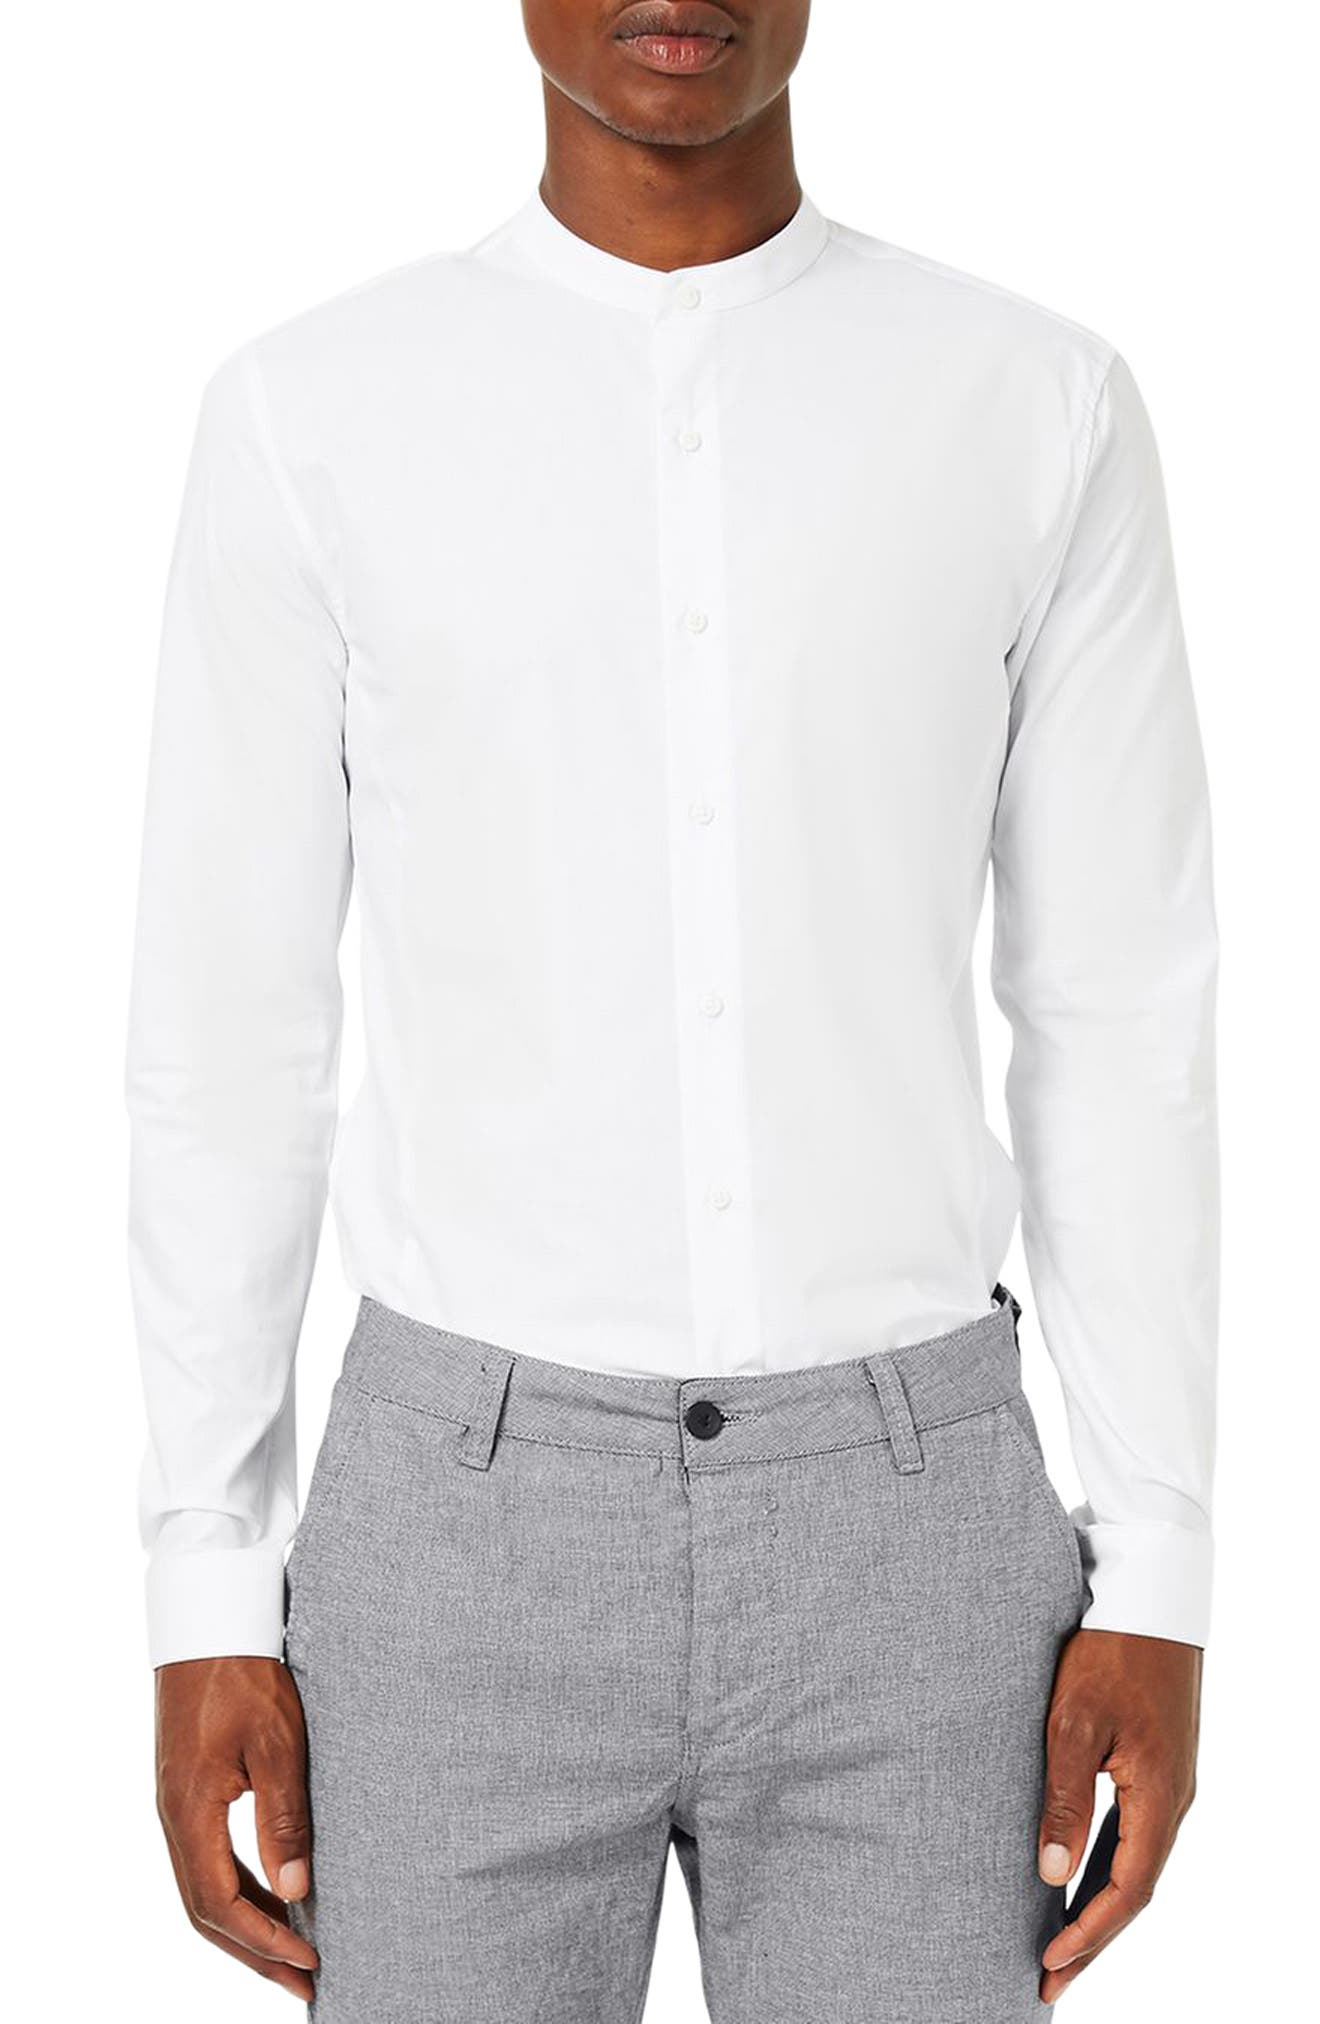 Band Collar Skinny Fit Dress Shirt,                         Main,                         color, White